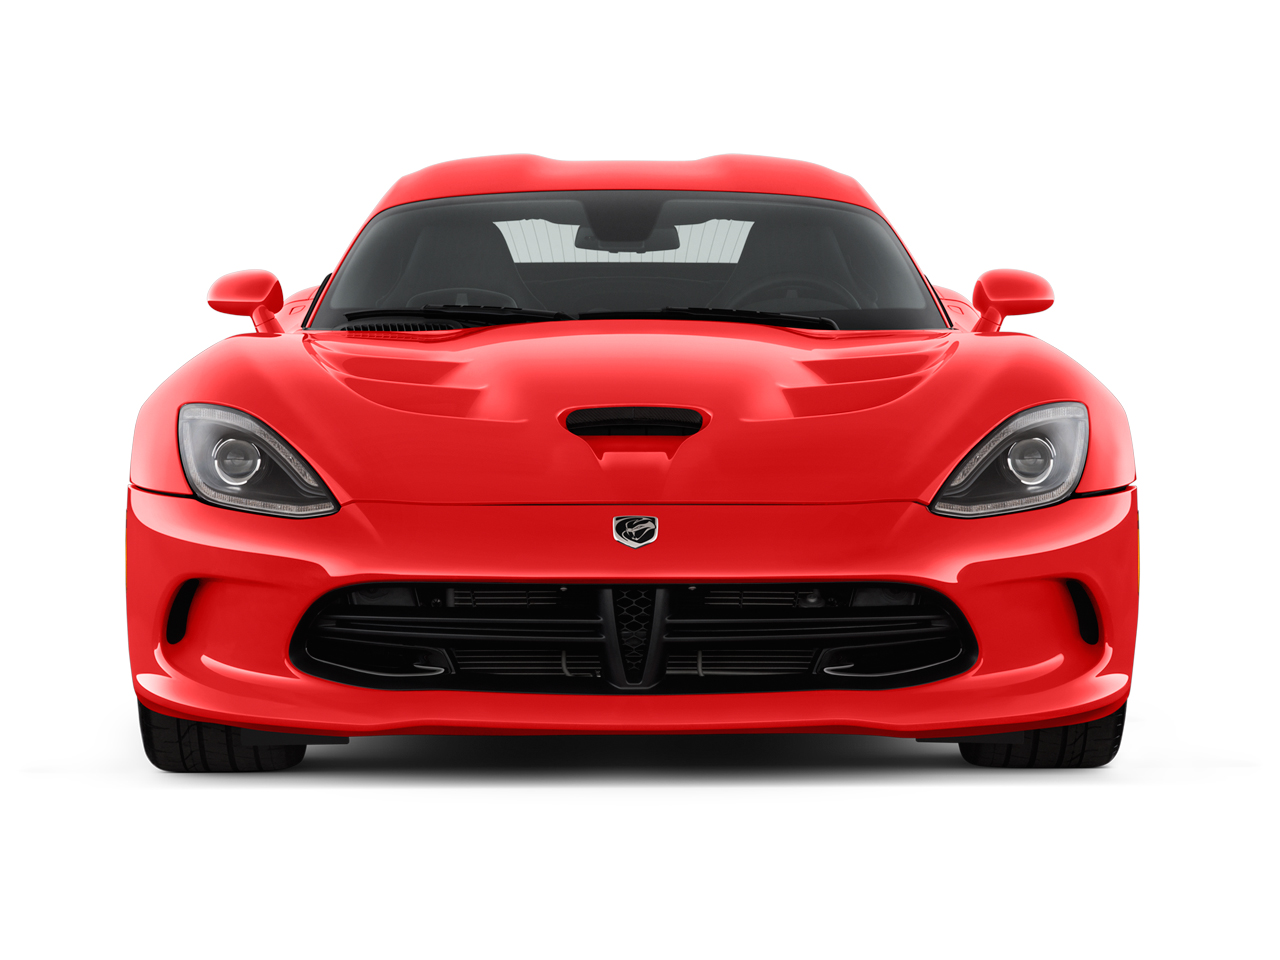 Car Pictures List For Dodge Viper 2018 8.4L GTS (Kuwait